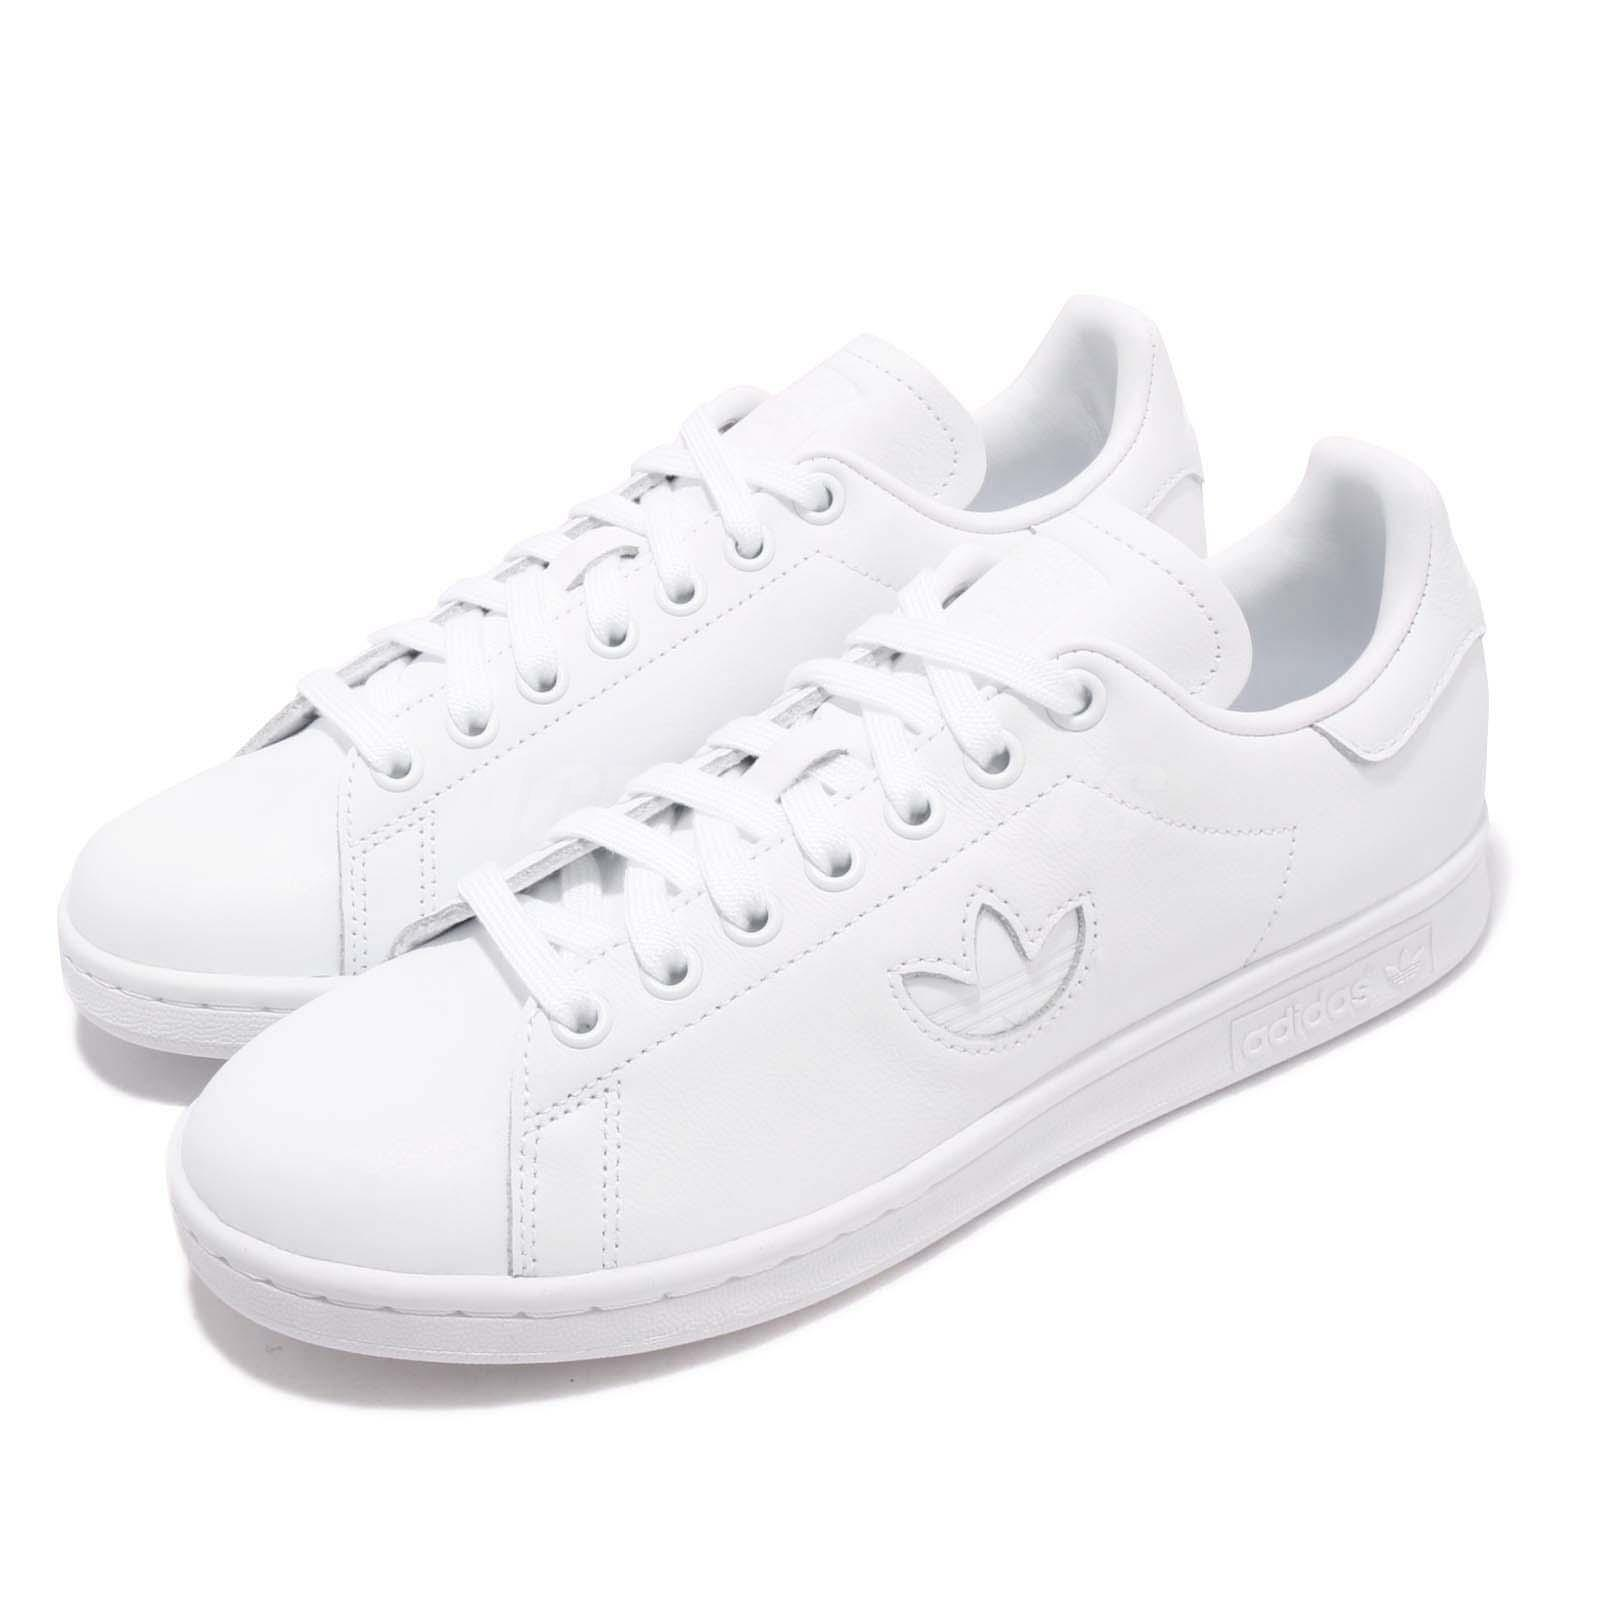 online store 7bd69 e6130 Details about adidas Originals Stan Smith Triple White Men Women Casual  Lifestyle Shoes BD7451